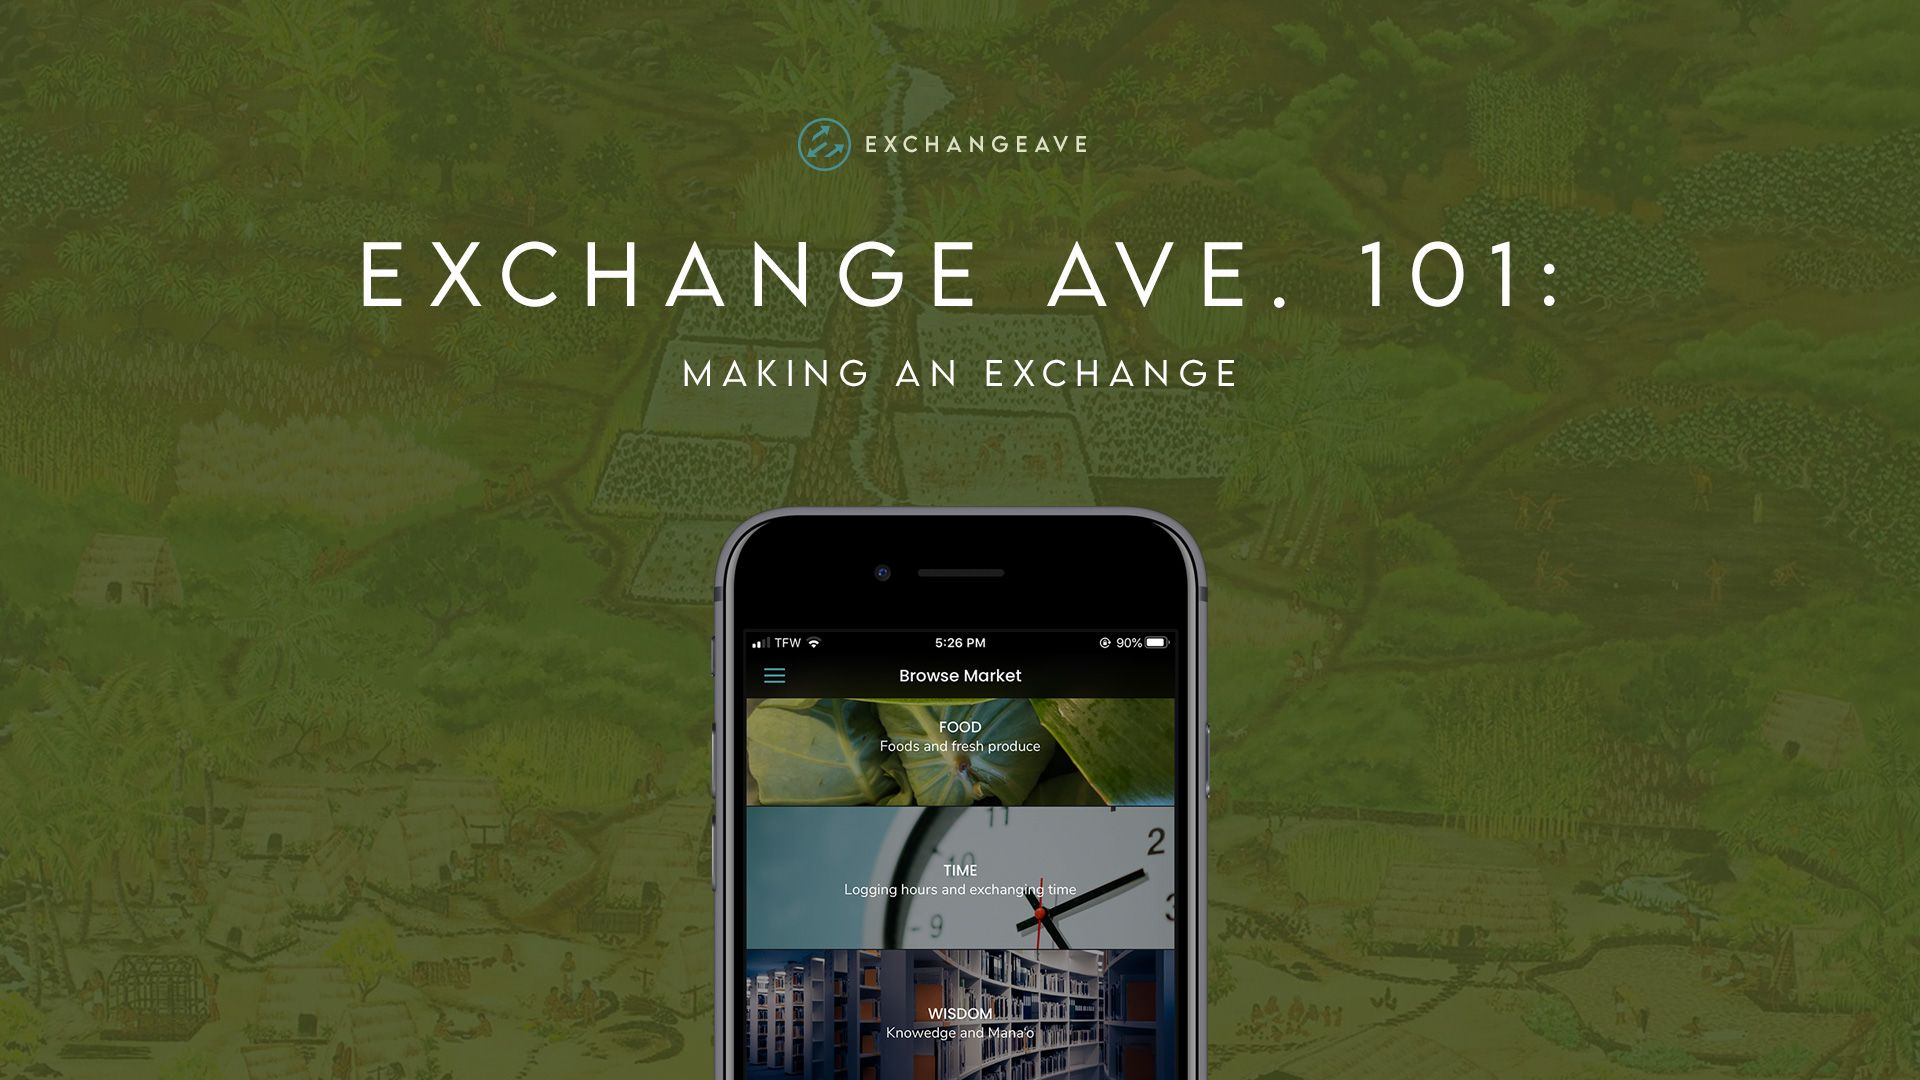 Exchange Ave. 101: Making An Exchange